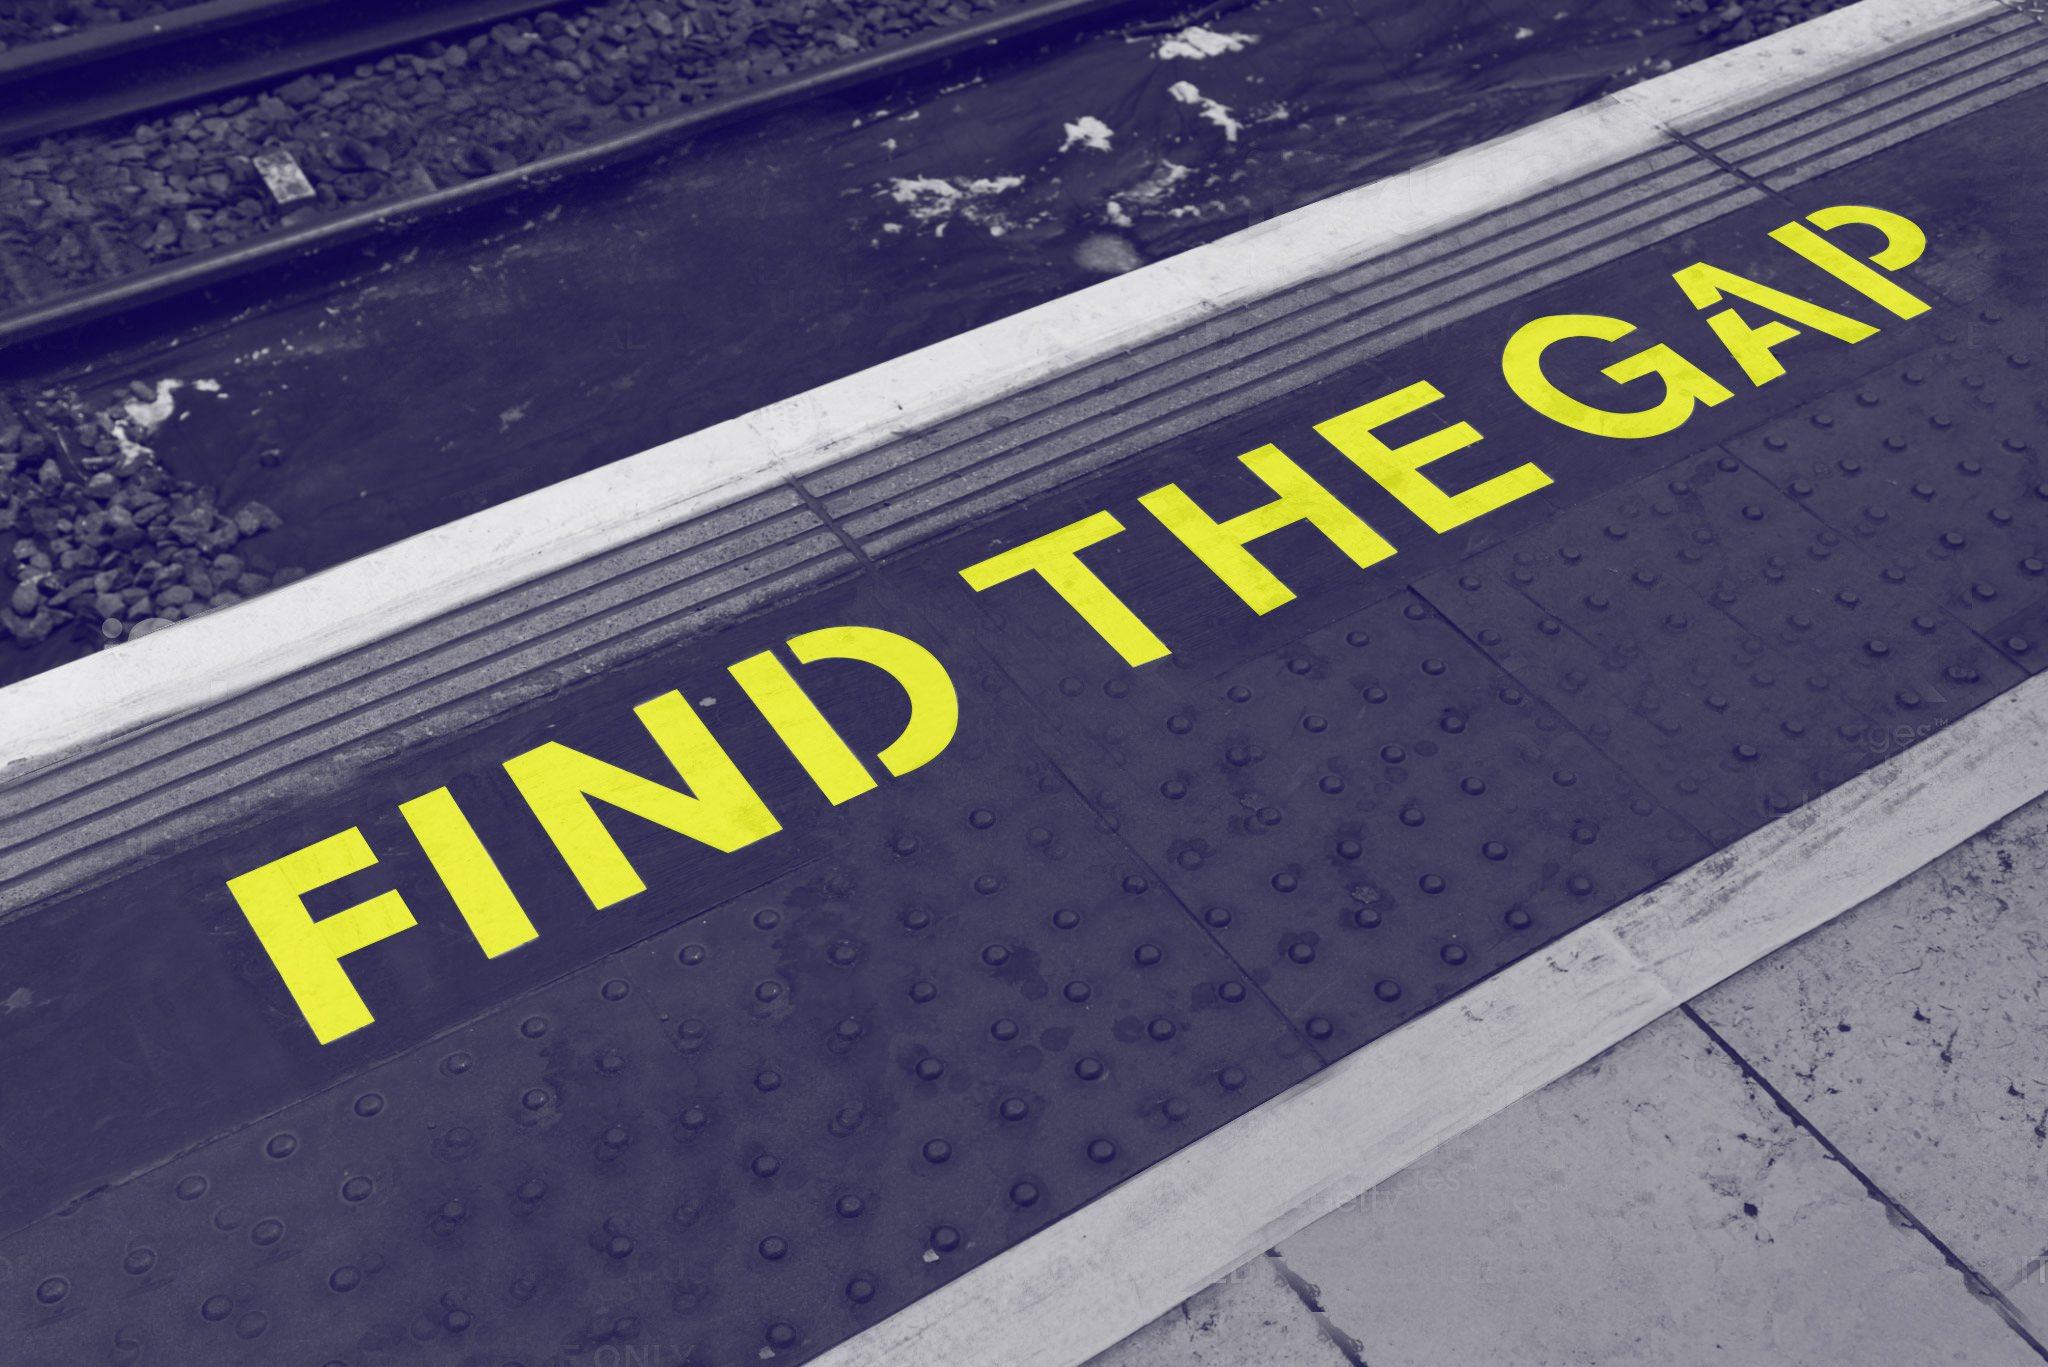 Find The Gap - How to find the gaps in your marketplace